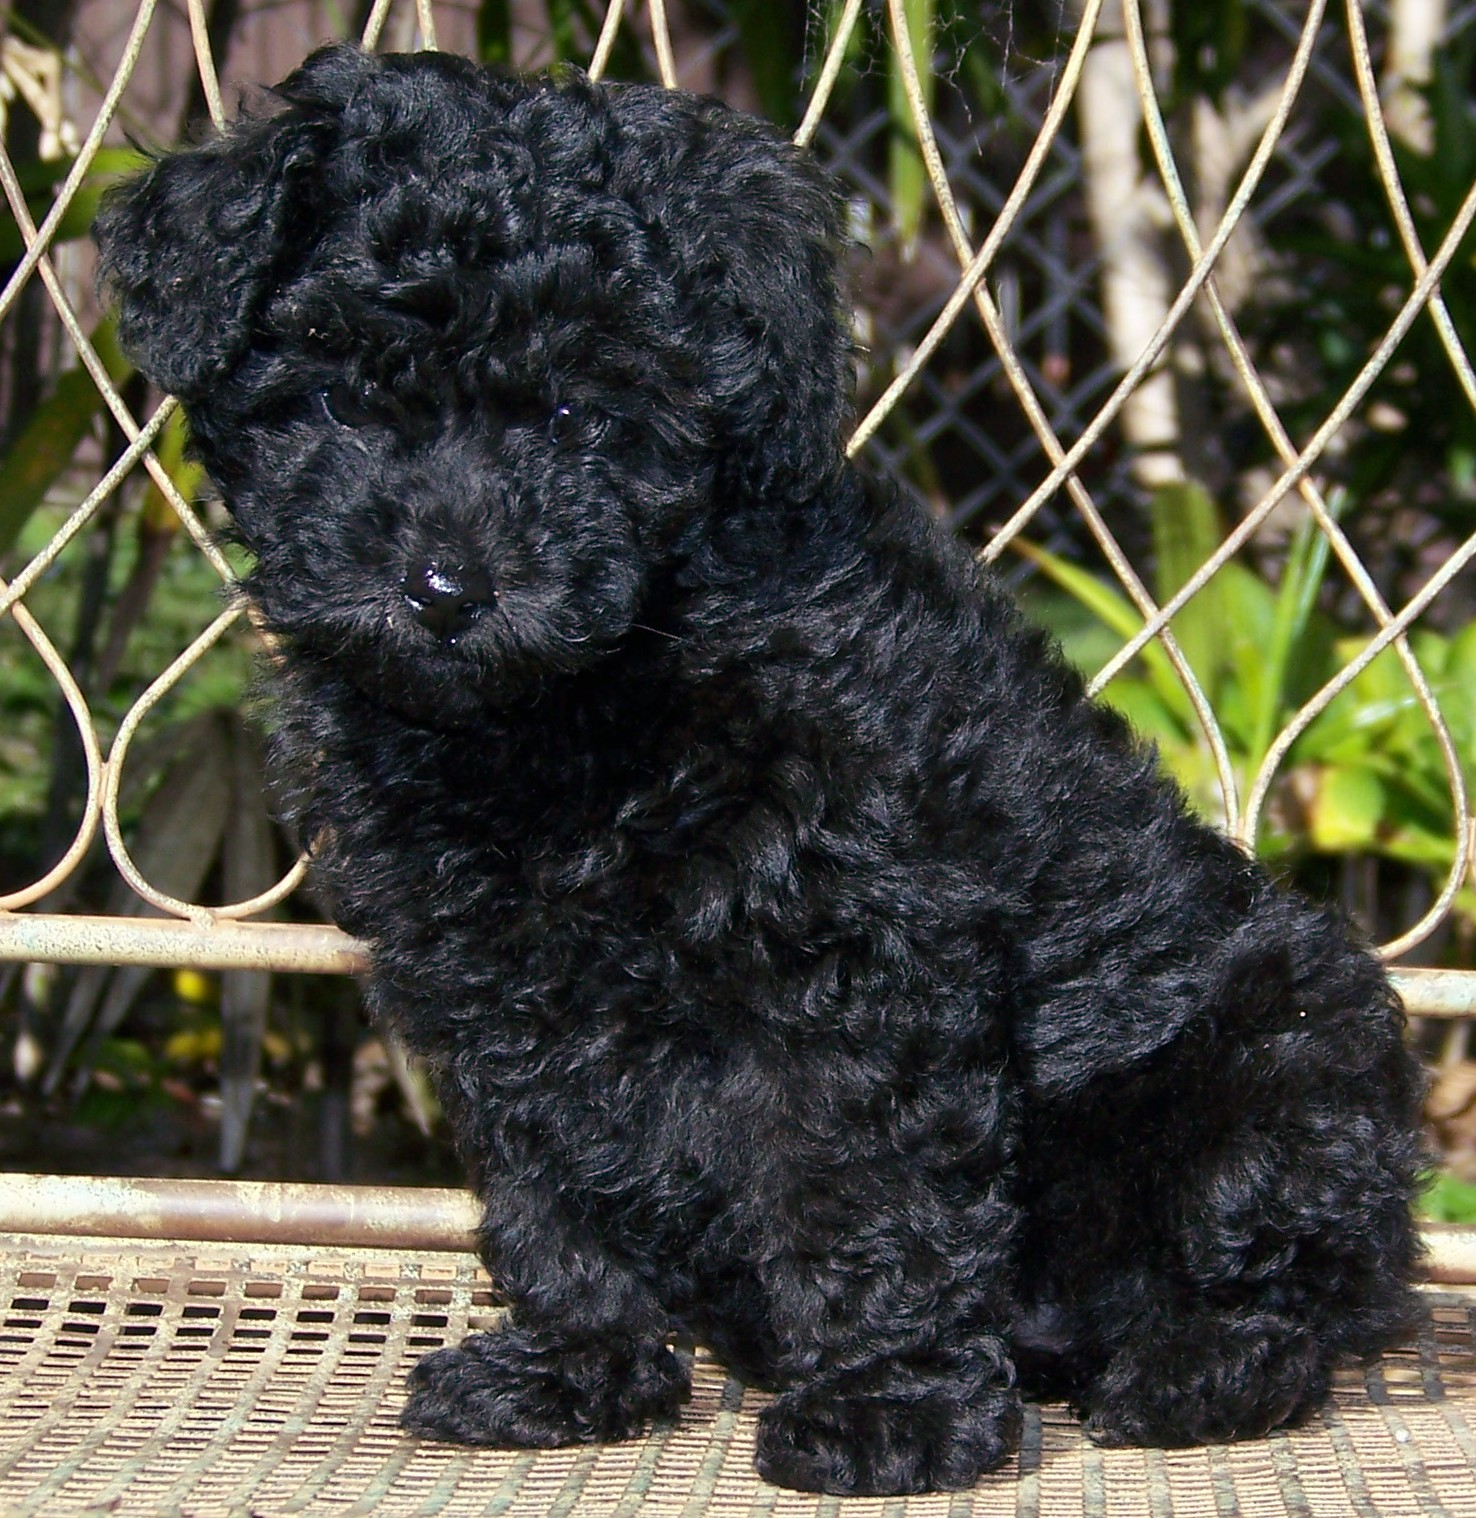 Toy Poodle Pups - Dogs For Sale in ballymena